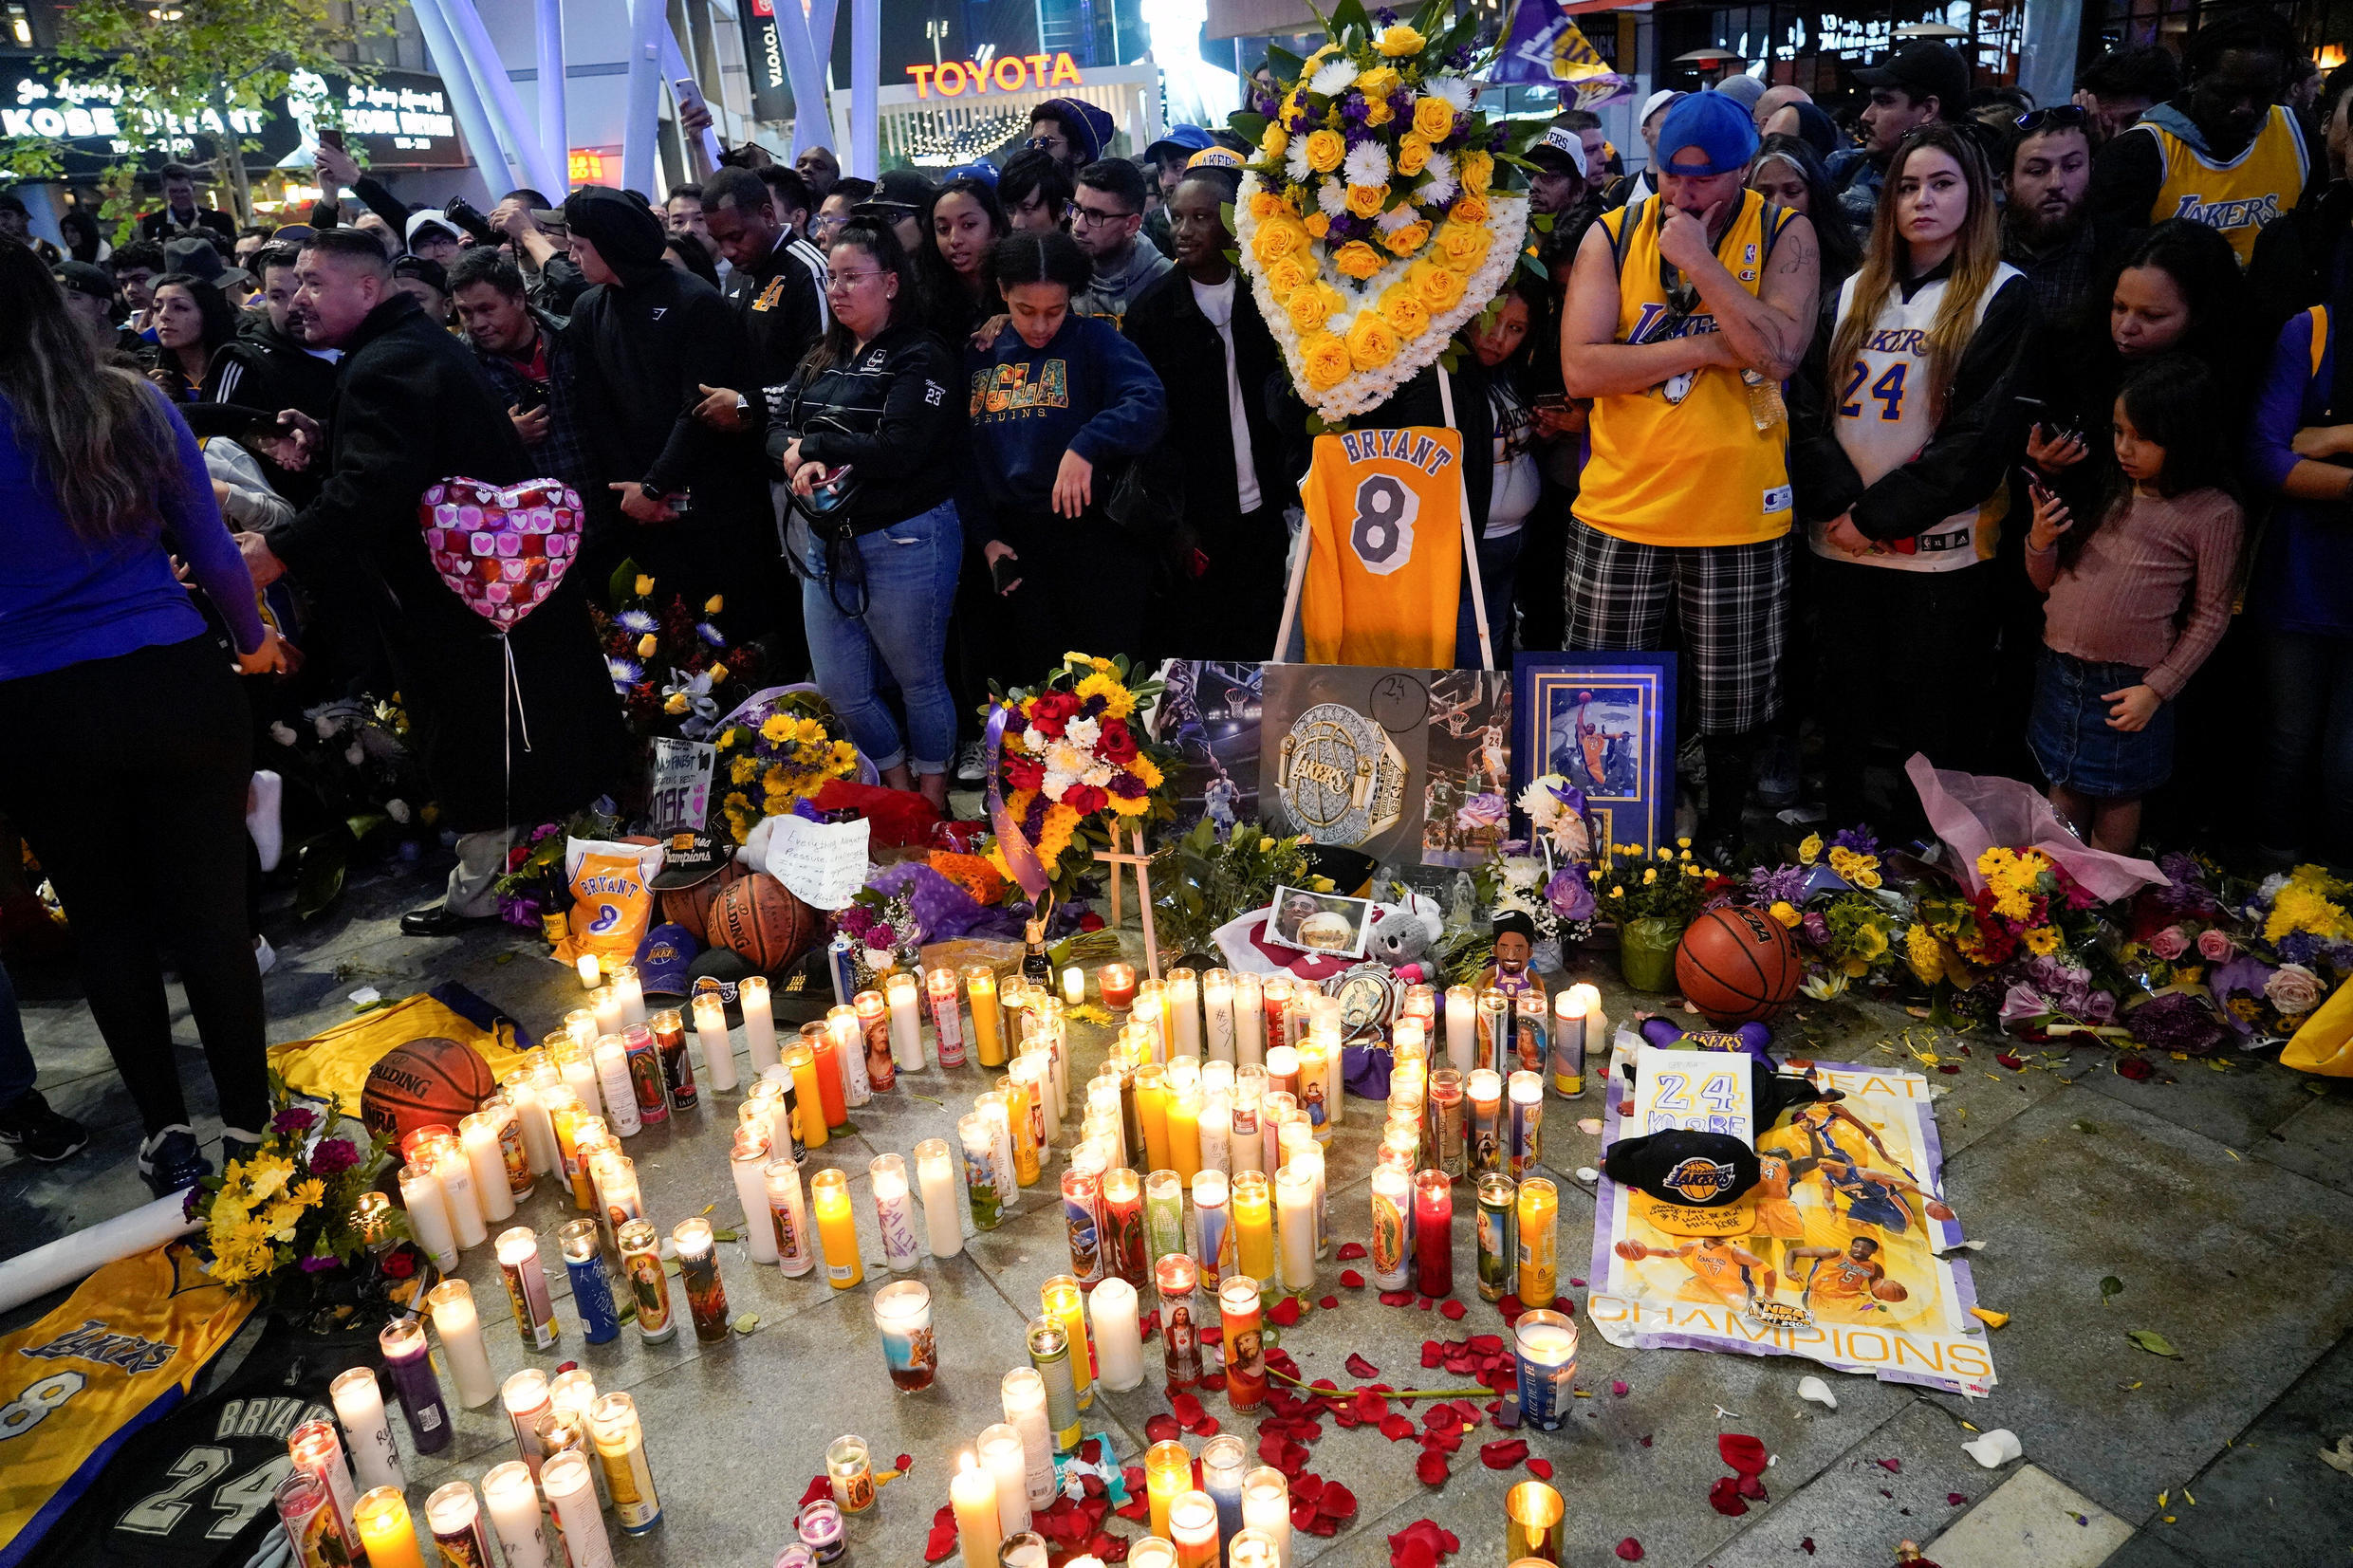 Mourners gather in Microsoft Square near the Staples Center in Los Angeles, California, to pay respects to Kobe Bryant after the retired basketball star was killed in a helicopter crash on January 26, 2020.